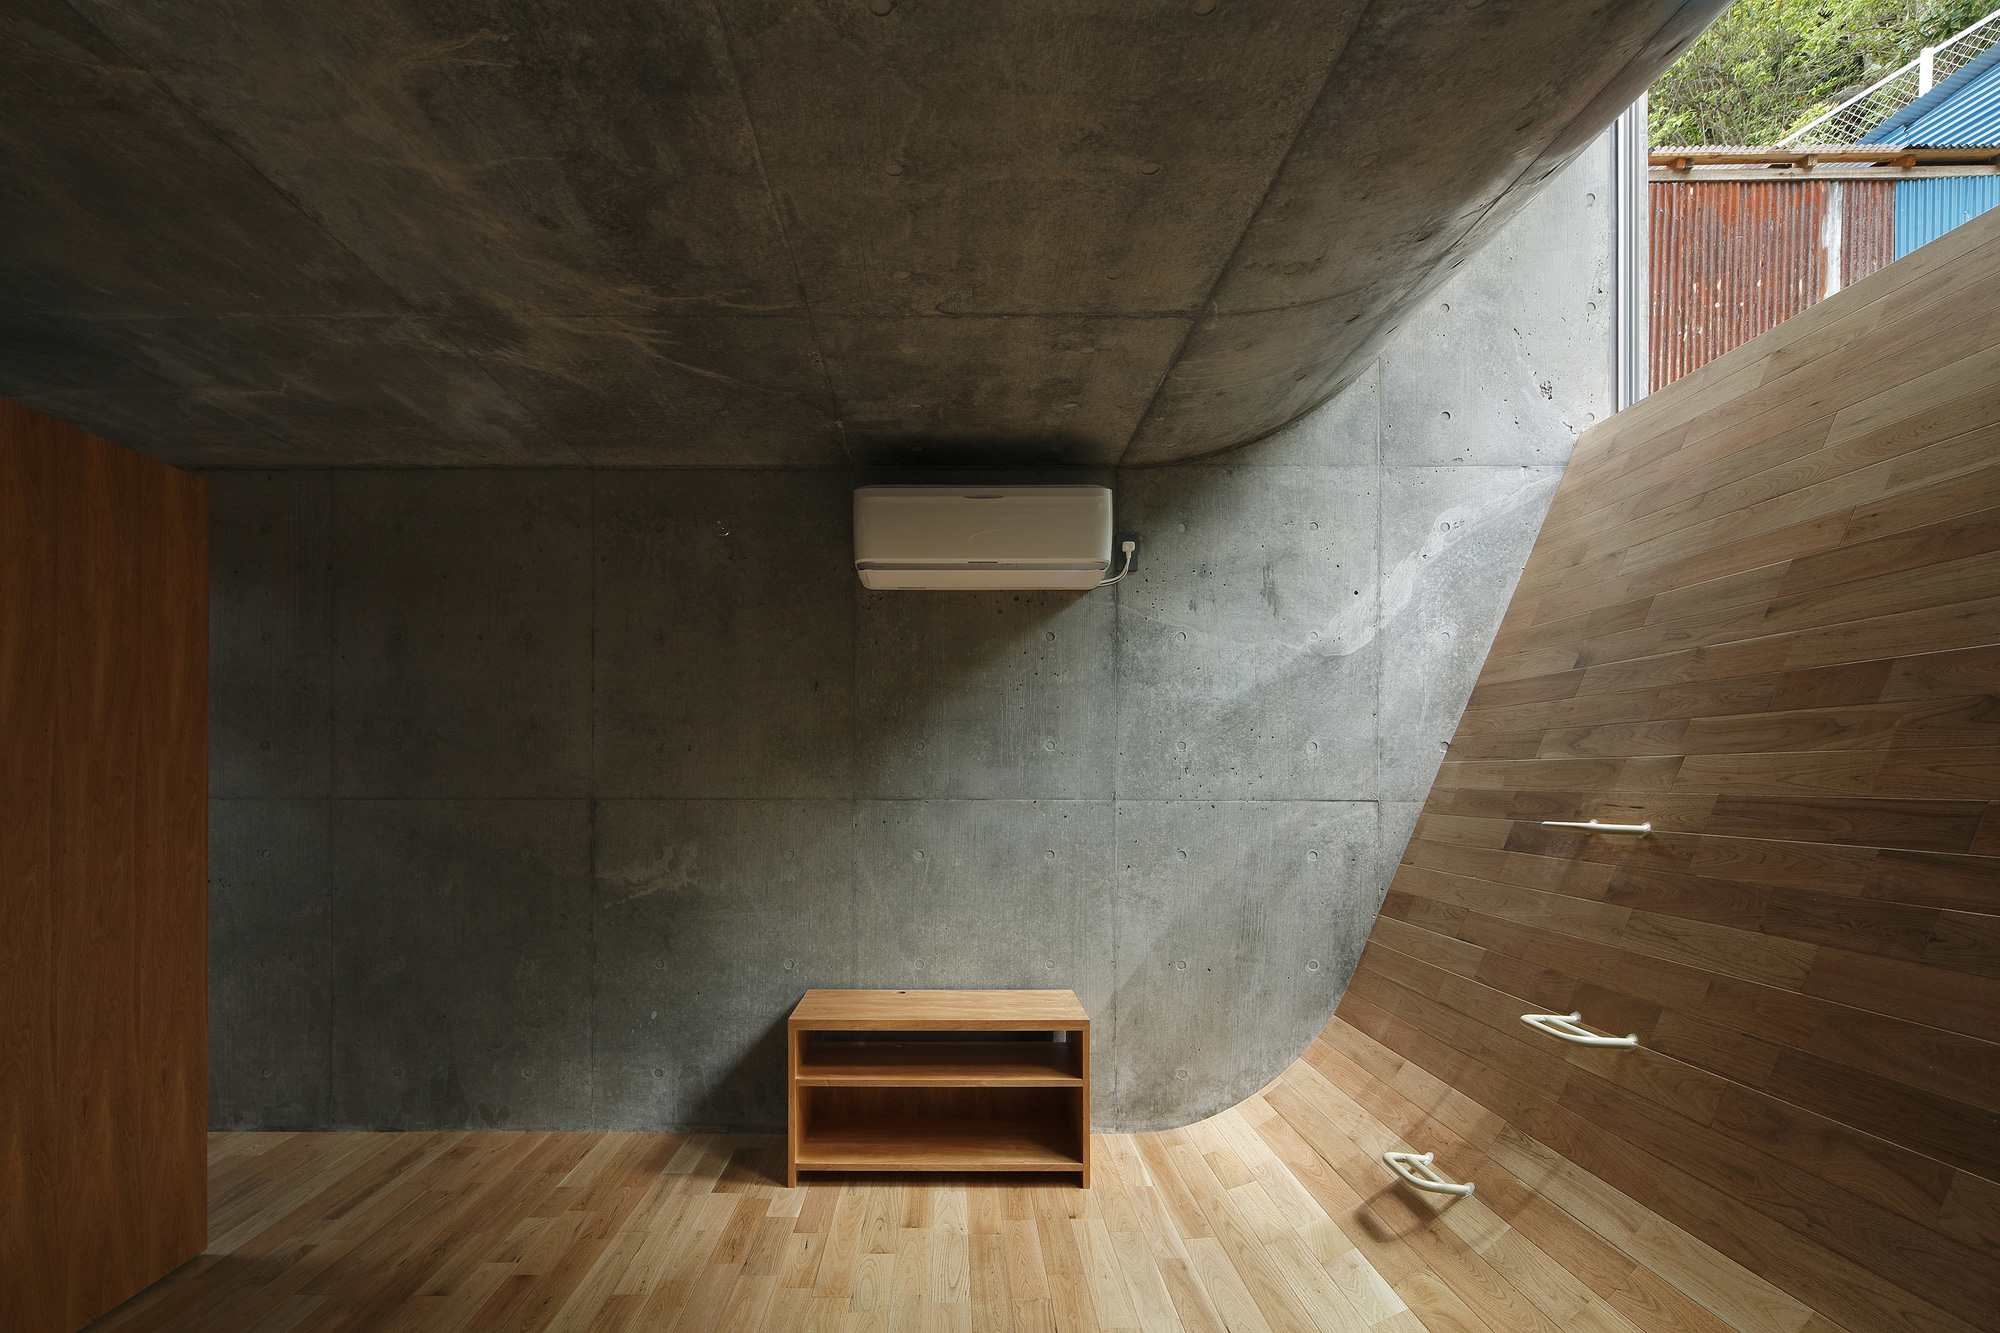 House in Byoubugaura / Takeshi Hosaka (24)